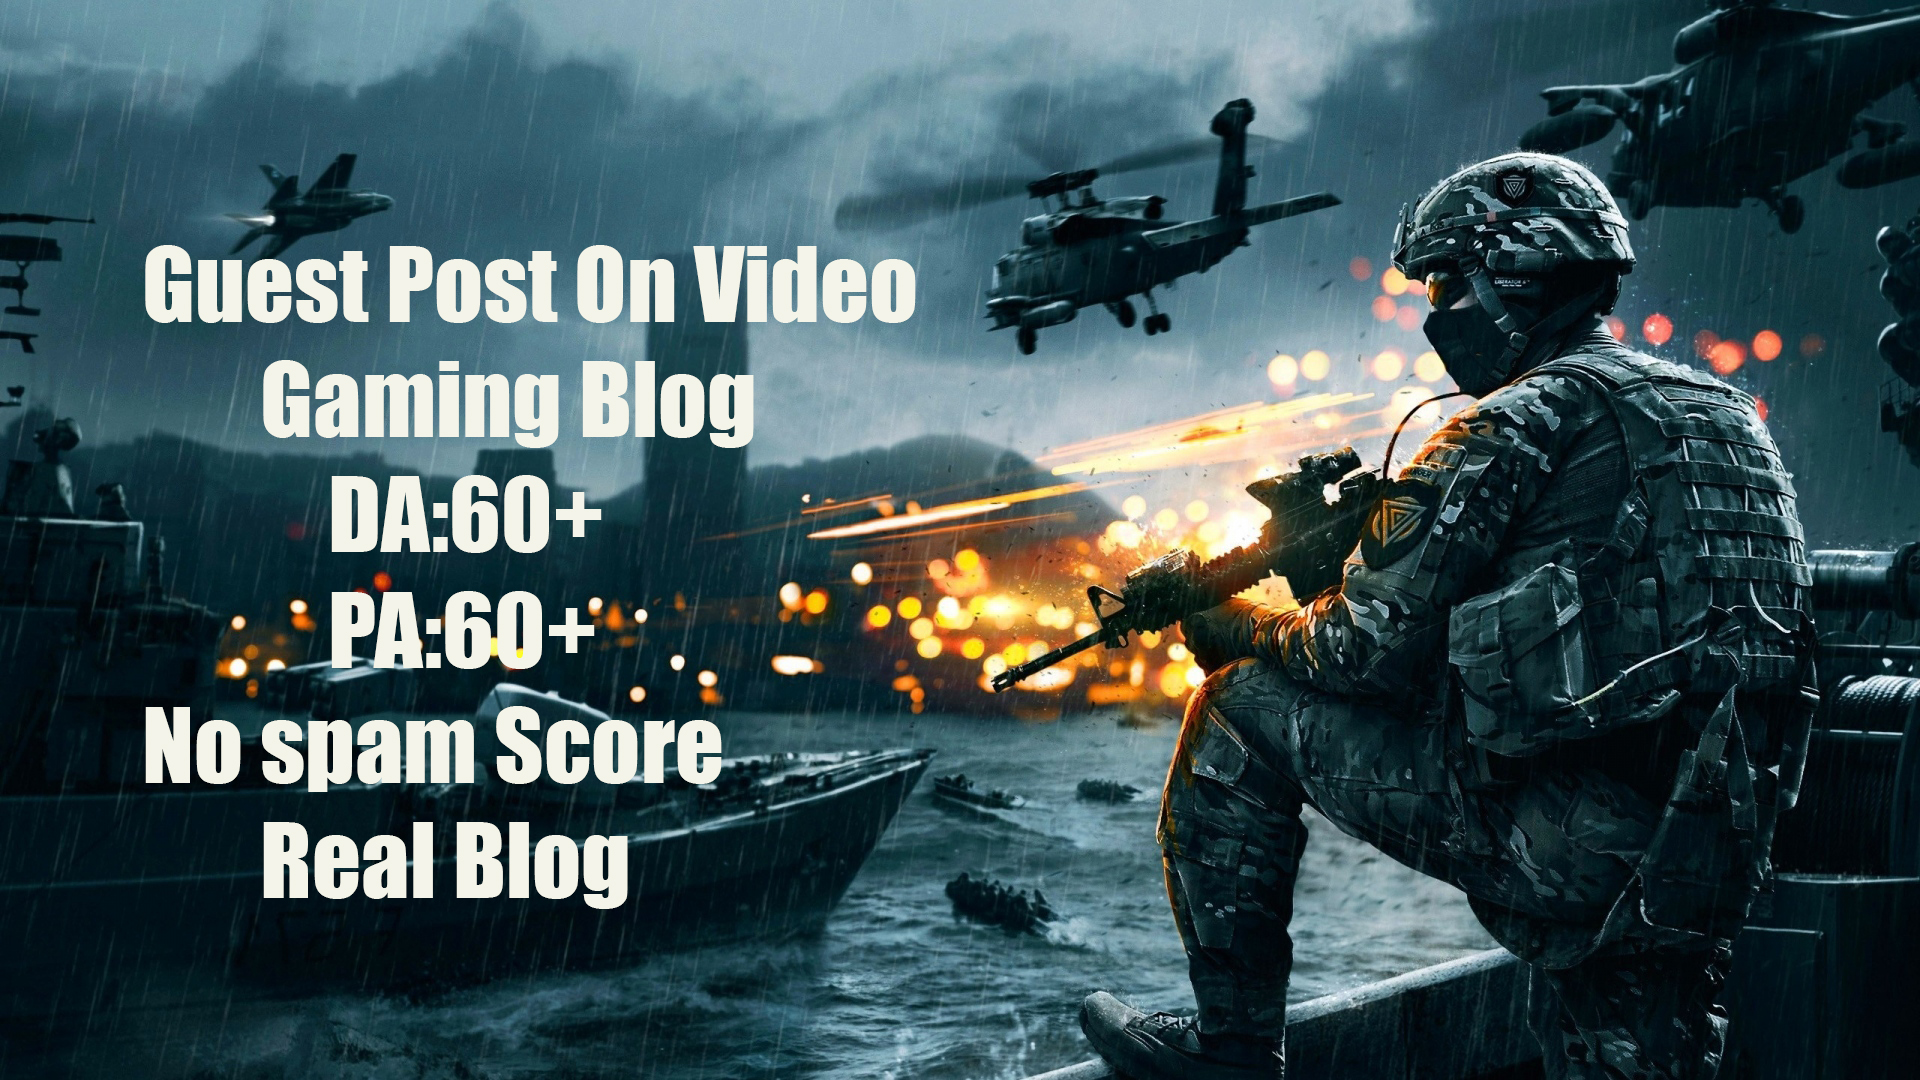 Guest Post on HQ Video Gaming Blog of DA 30